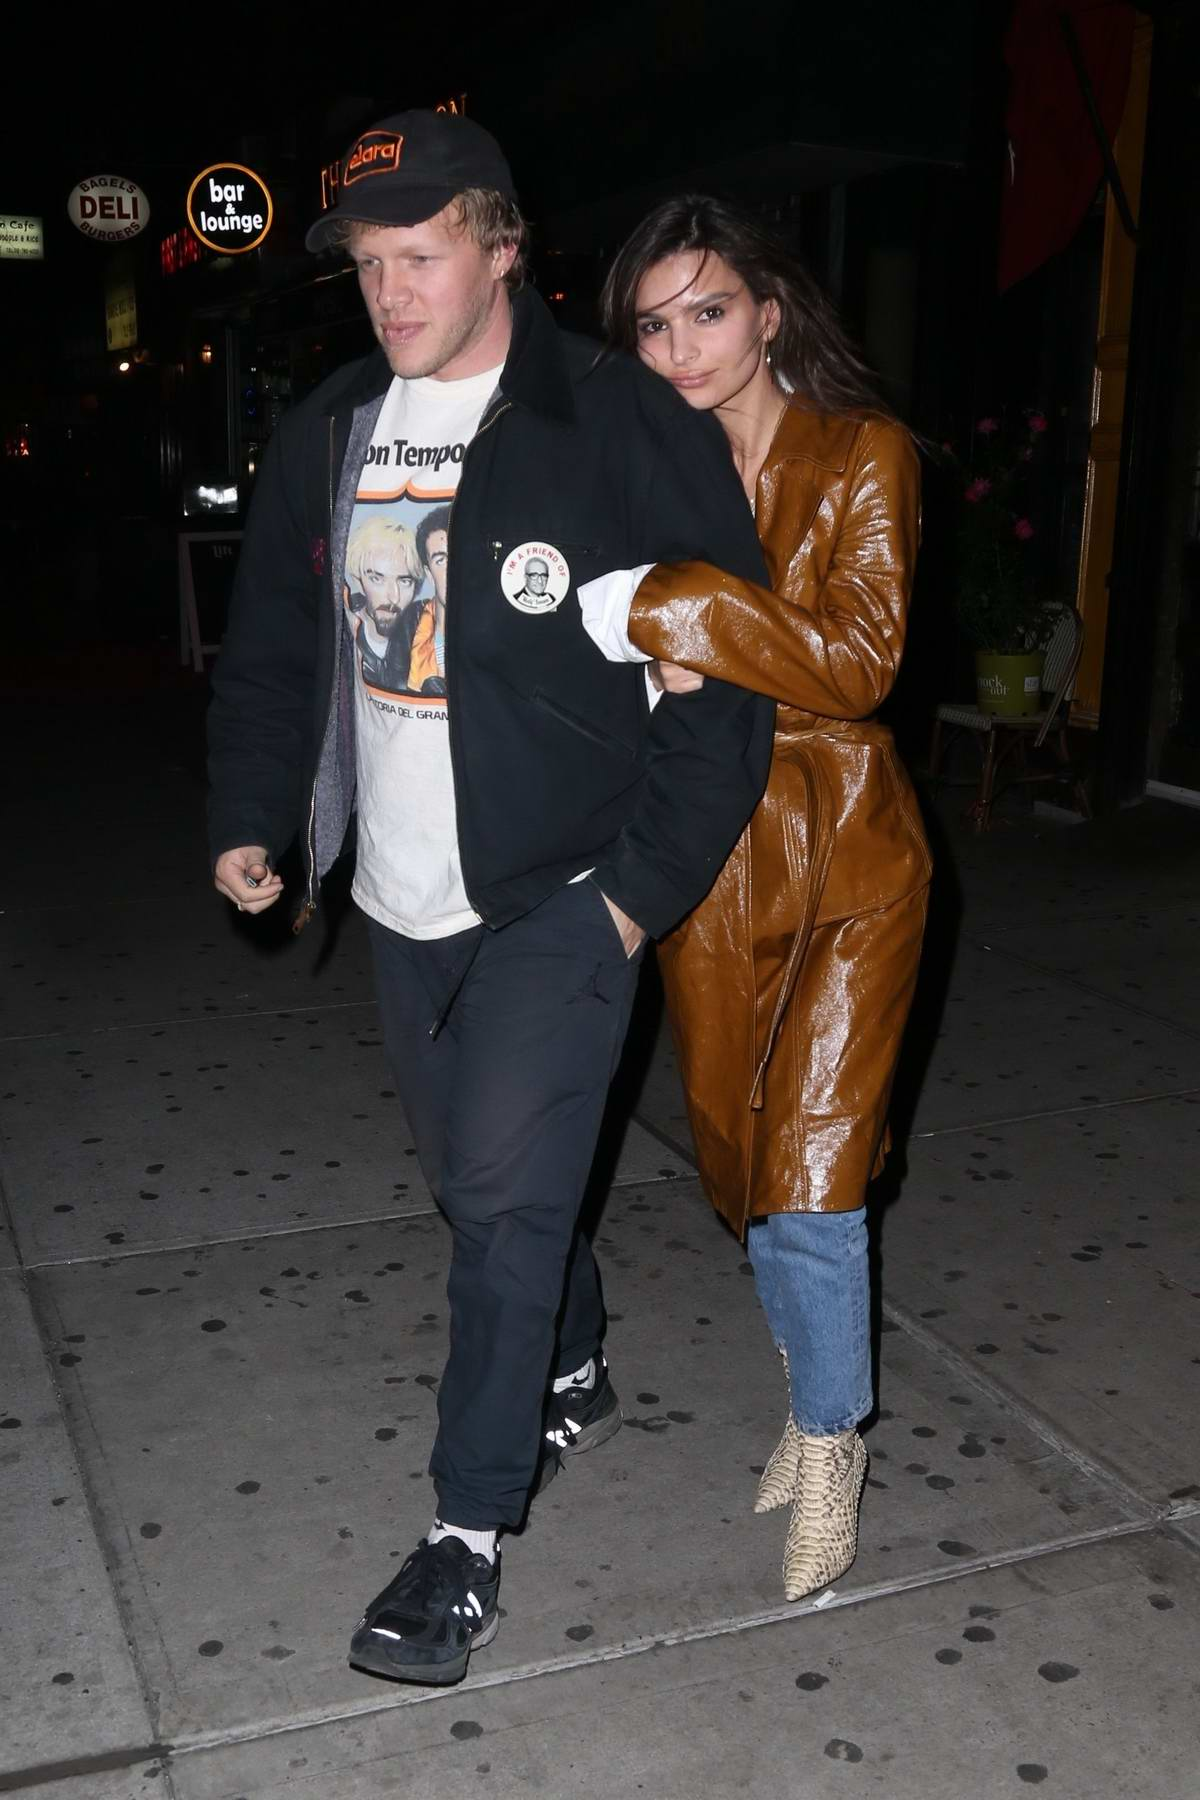 Emily Ratajkowski cuddles up to husband Sebastian Bear-McClard after dinner with friends during a night out in New York City